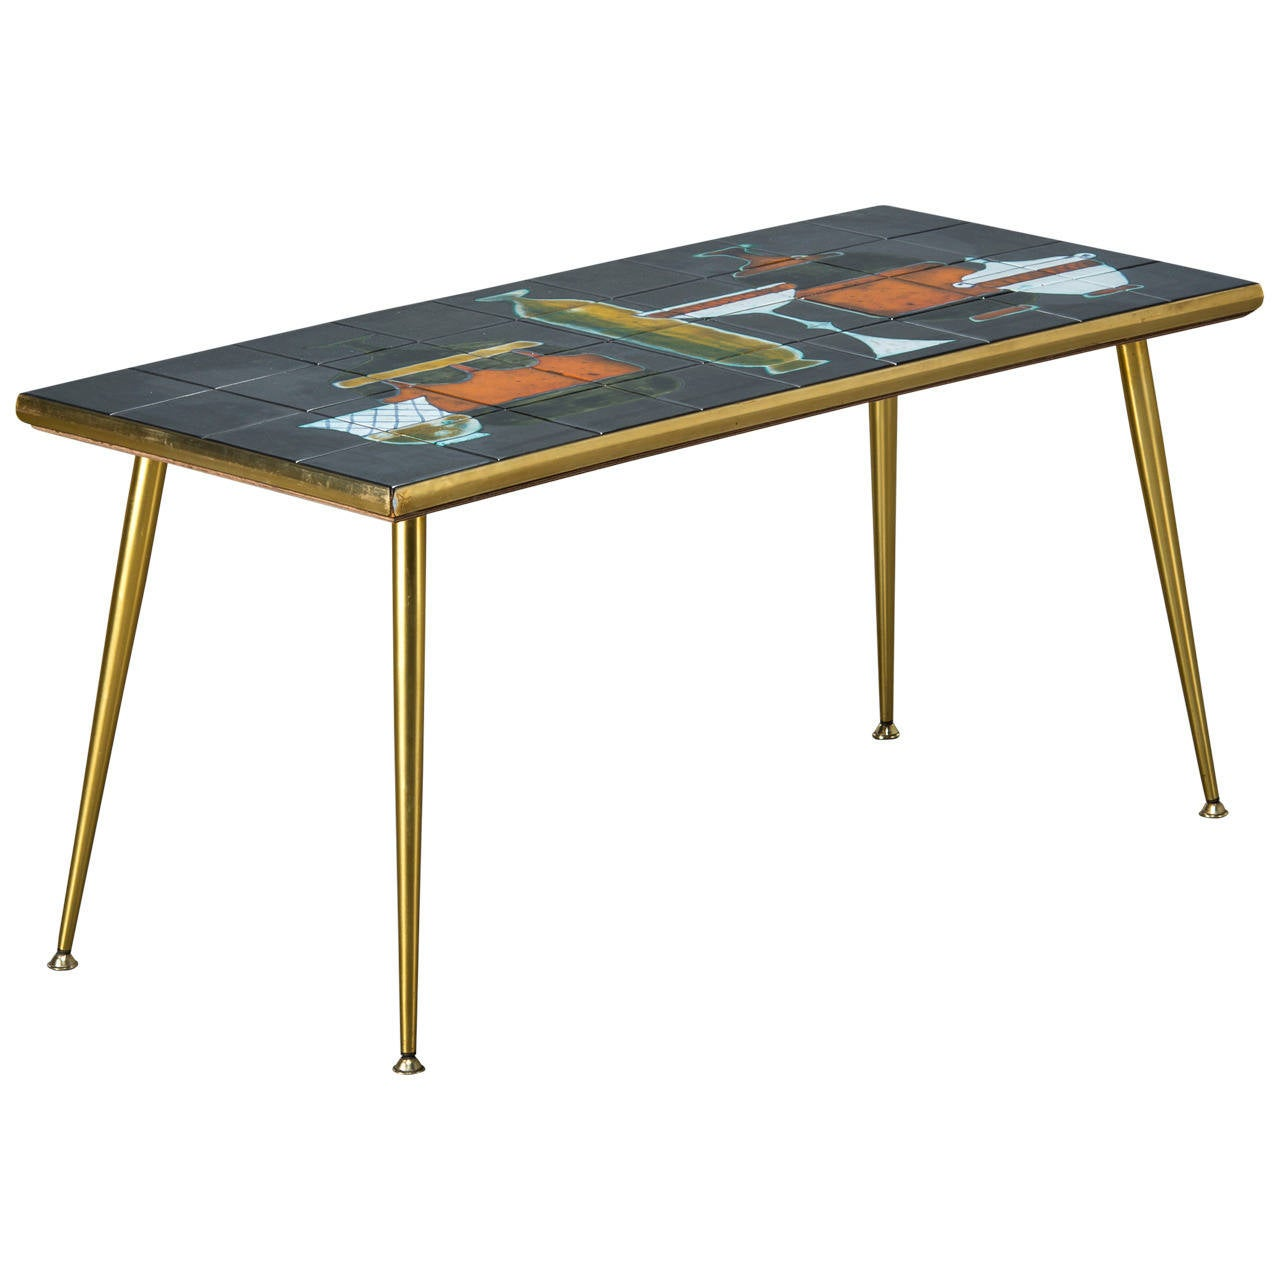 Italian Coffee Table Italian Coffee Table With Tile Table Top Mid 20th Century For